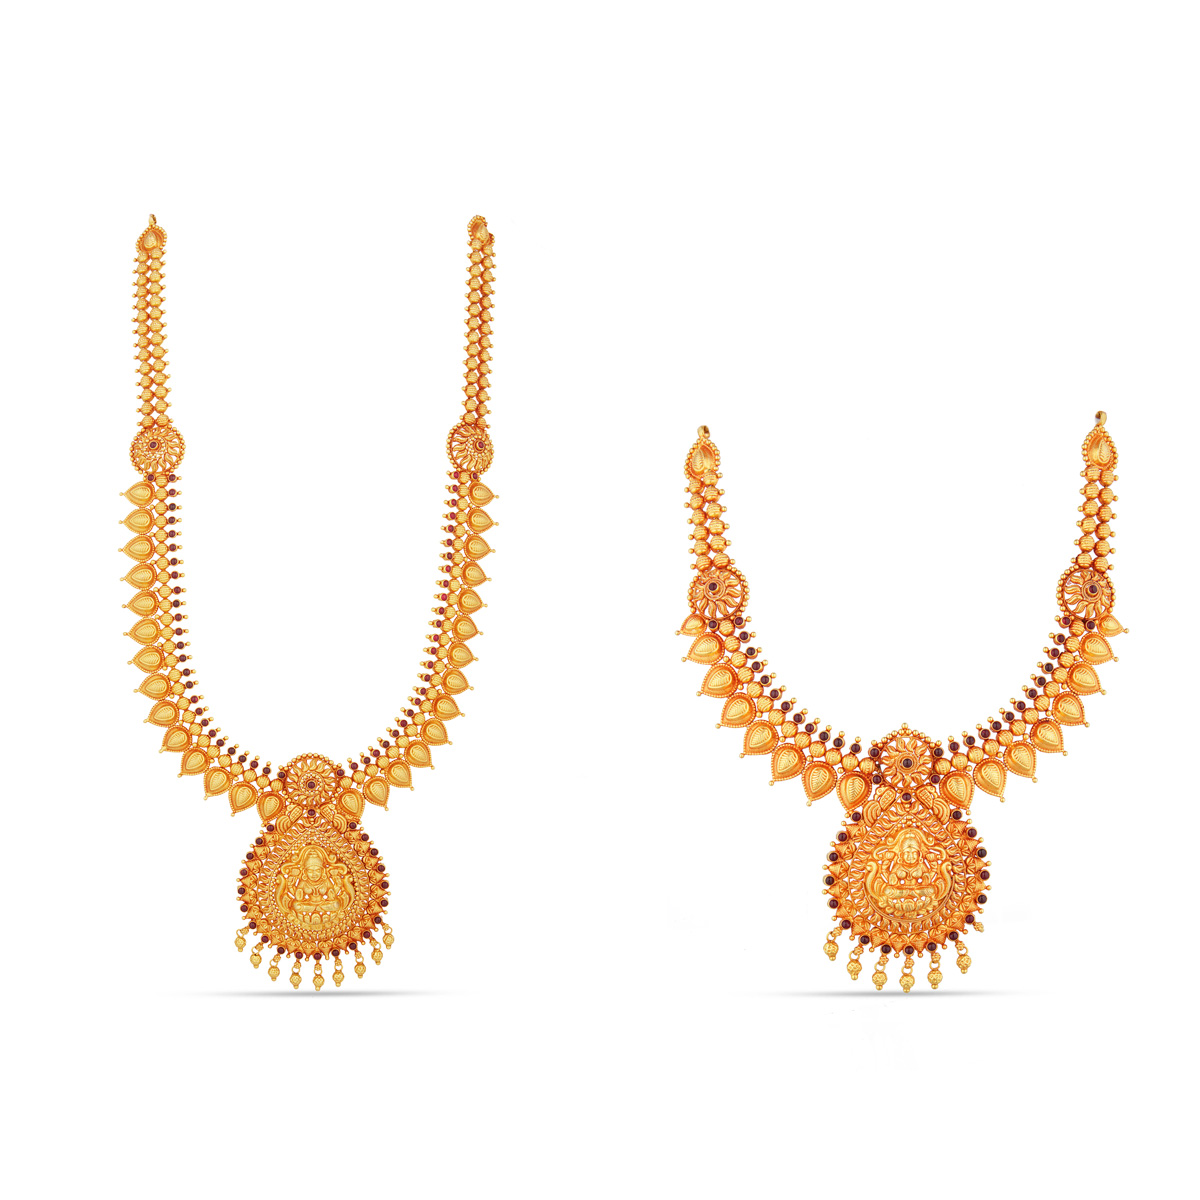 The Pranava Bridal Set